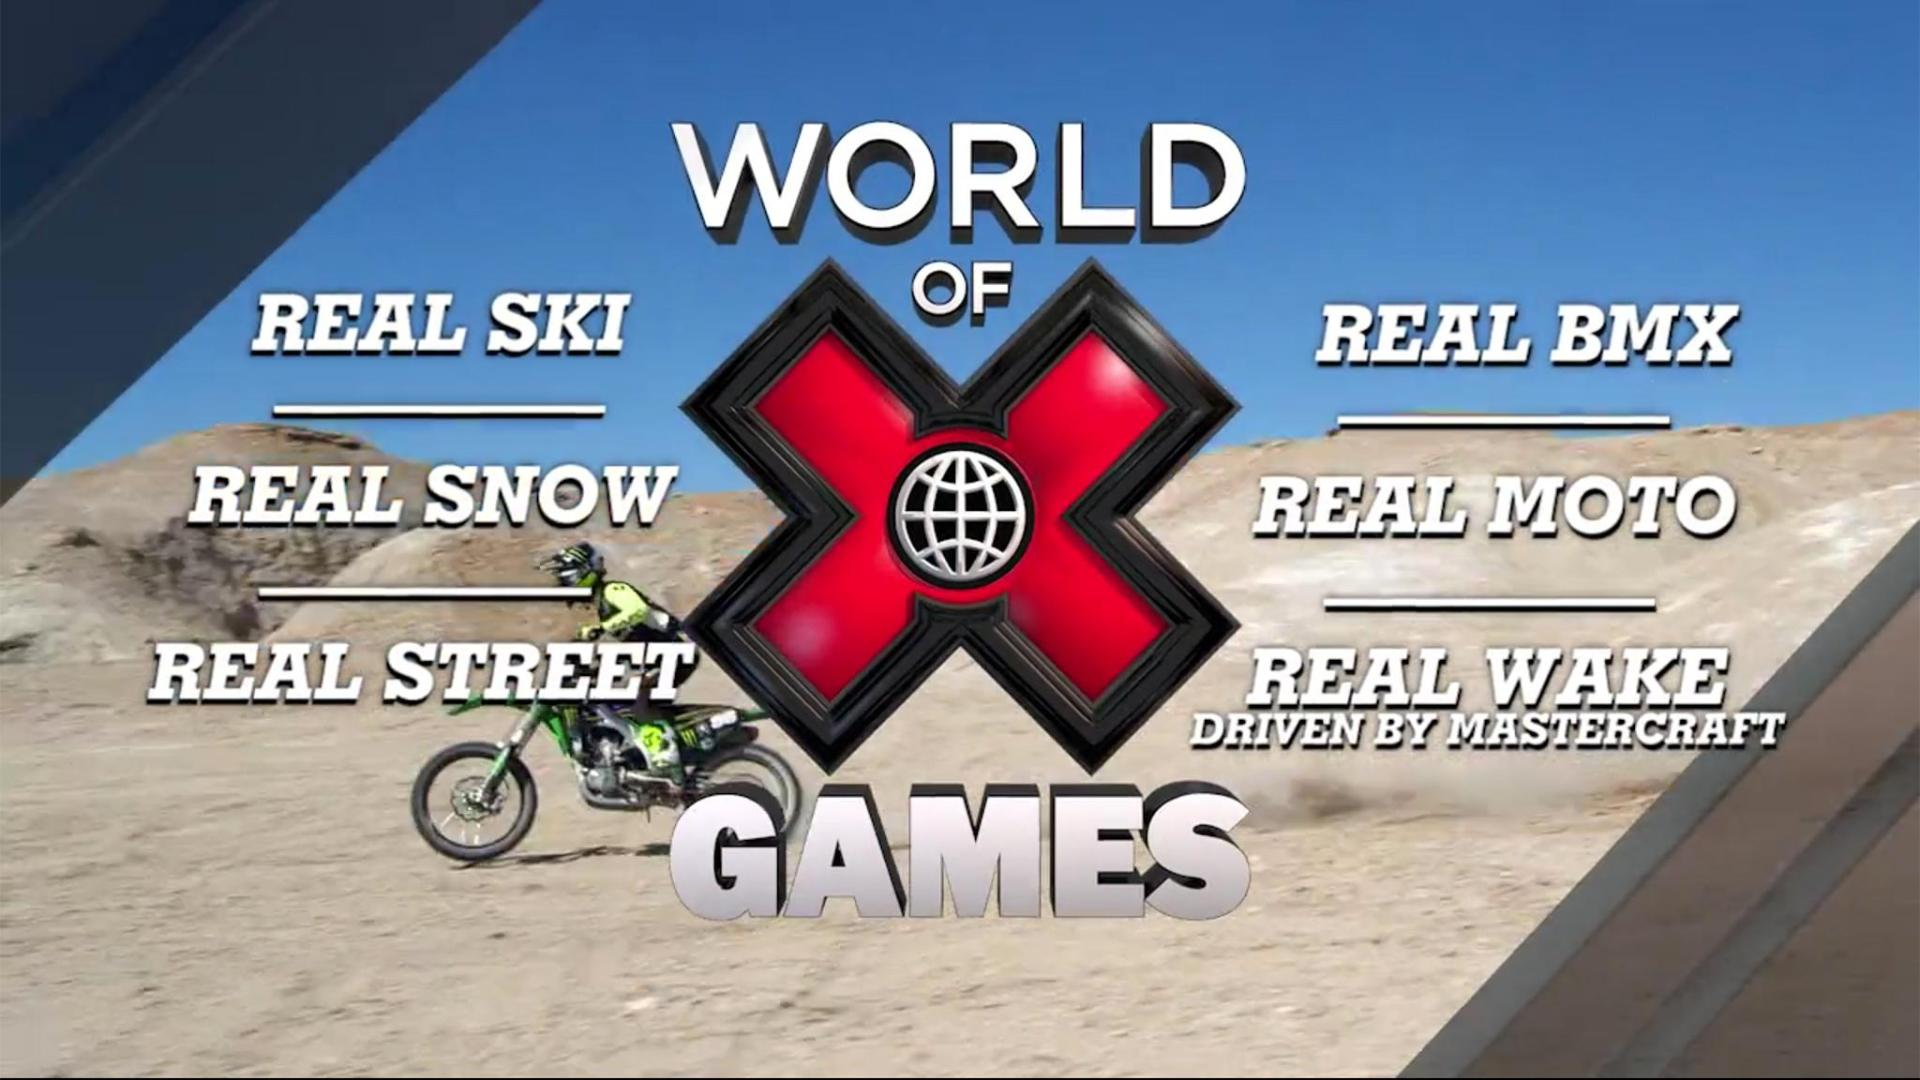 X Games announces the 2019 Real Series video competition